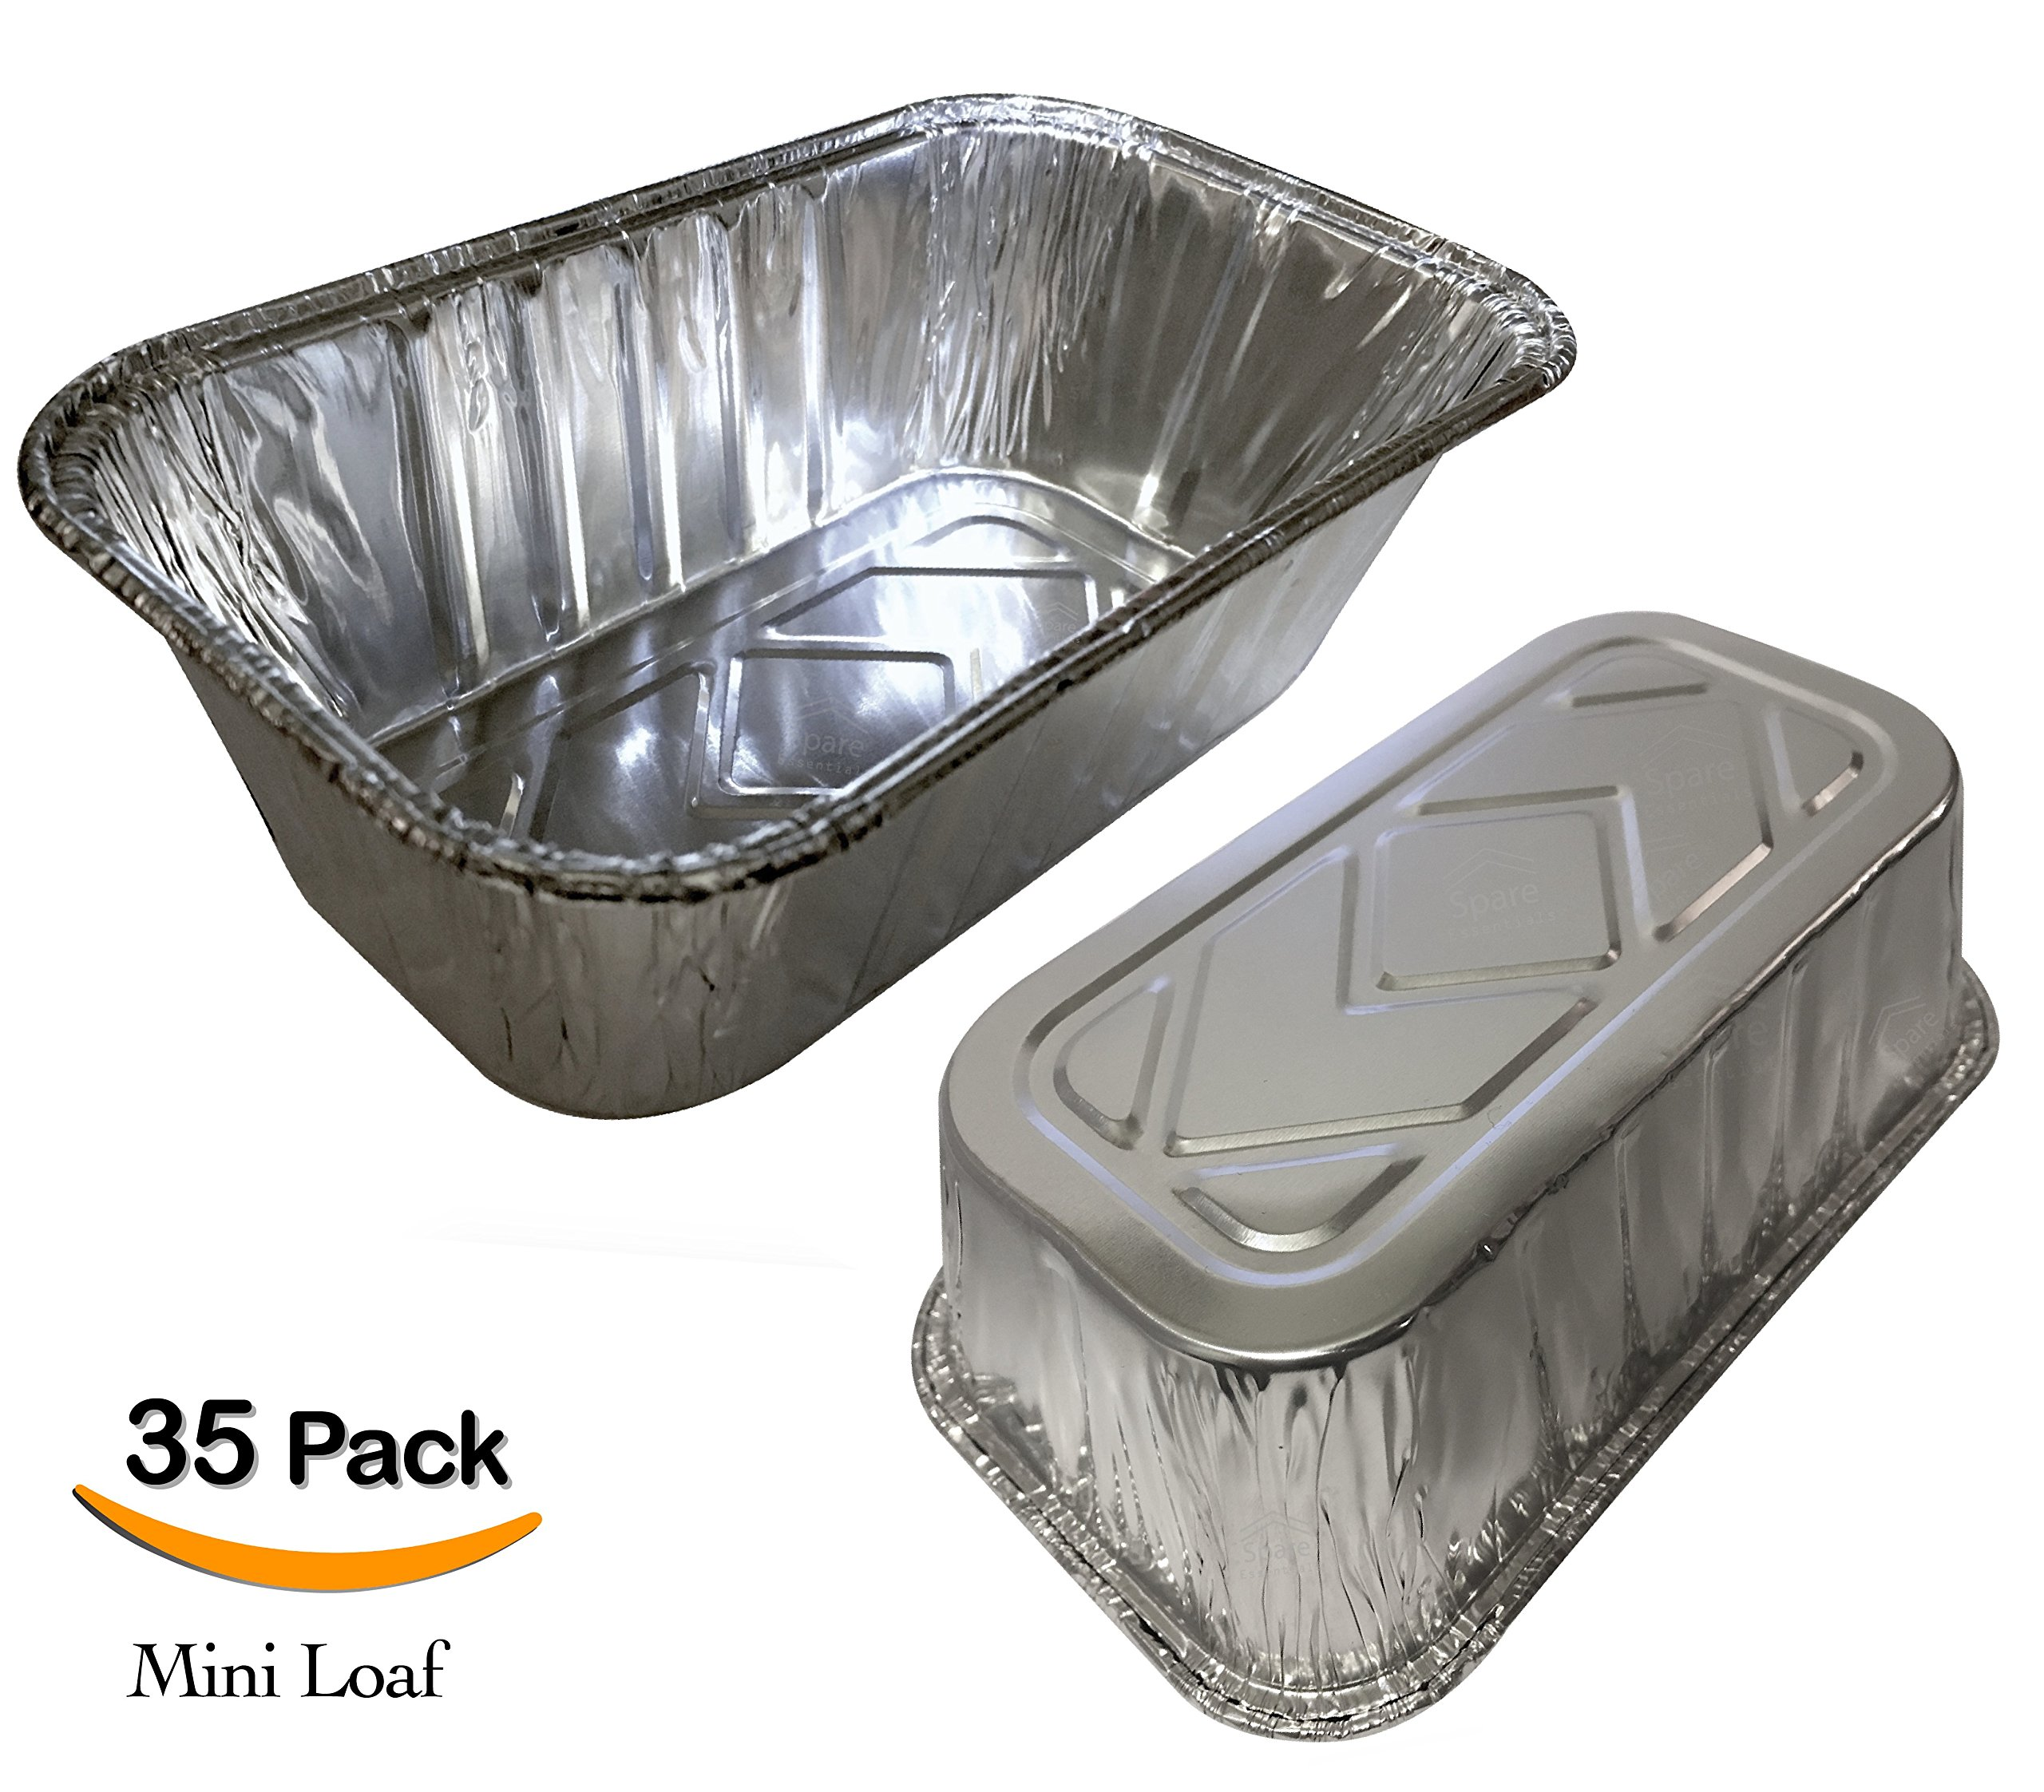 "35 Pack – 1LB Sturdy Mini Loaf Pans, Aluminum Pans, Bread Pans, Foil Loaf l Cake Pan, Disposable Aluminum Pans l Top bakery's choice Tin Pans - 1 Pound - 6'' X 3.5"" x 2"""